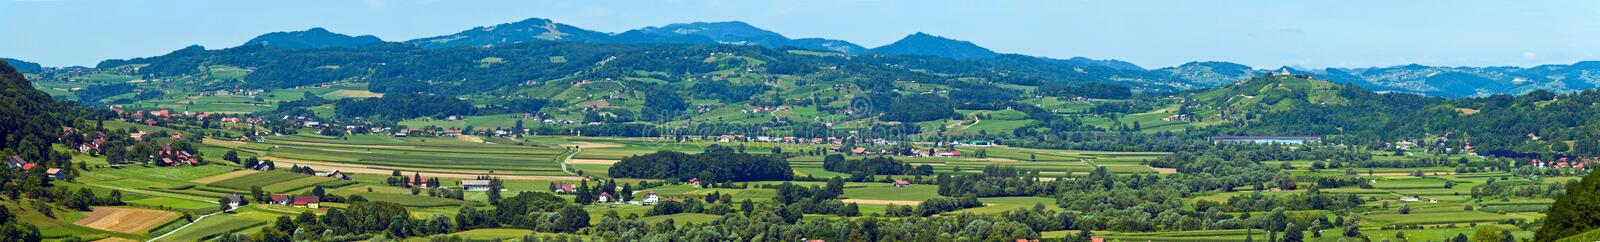 Croatian Zagorje landscape panorama. Aerial view of green fields and villages in Croatian Zagorje royalty free stock photography